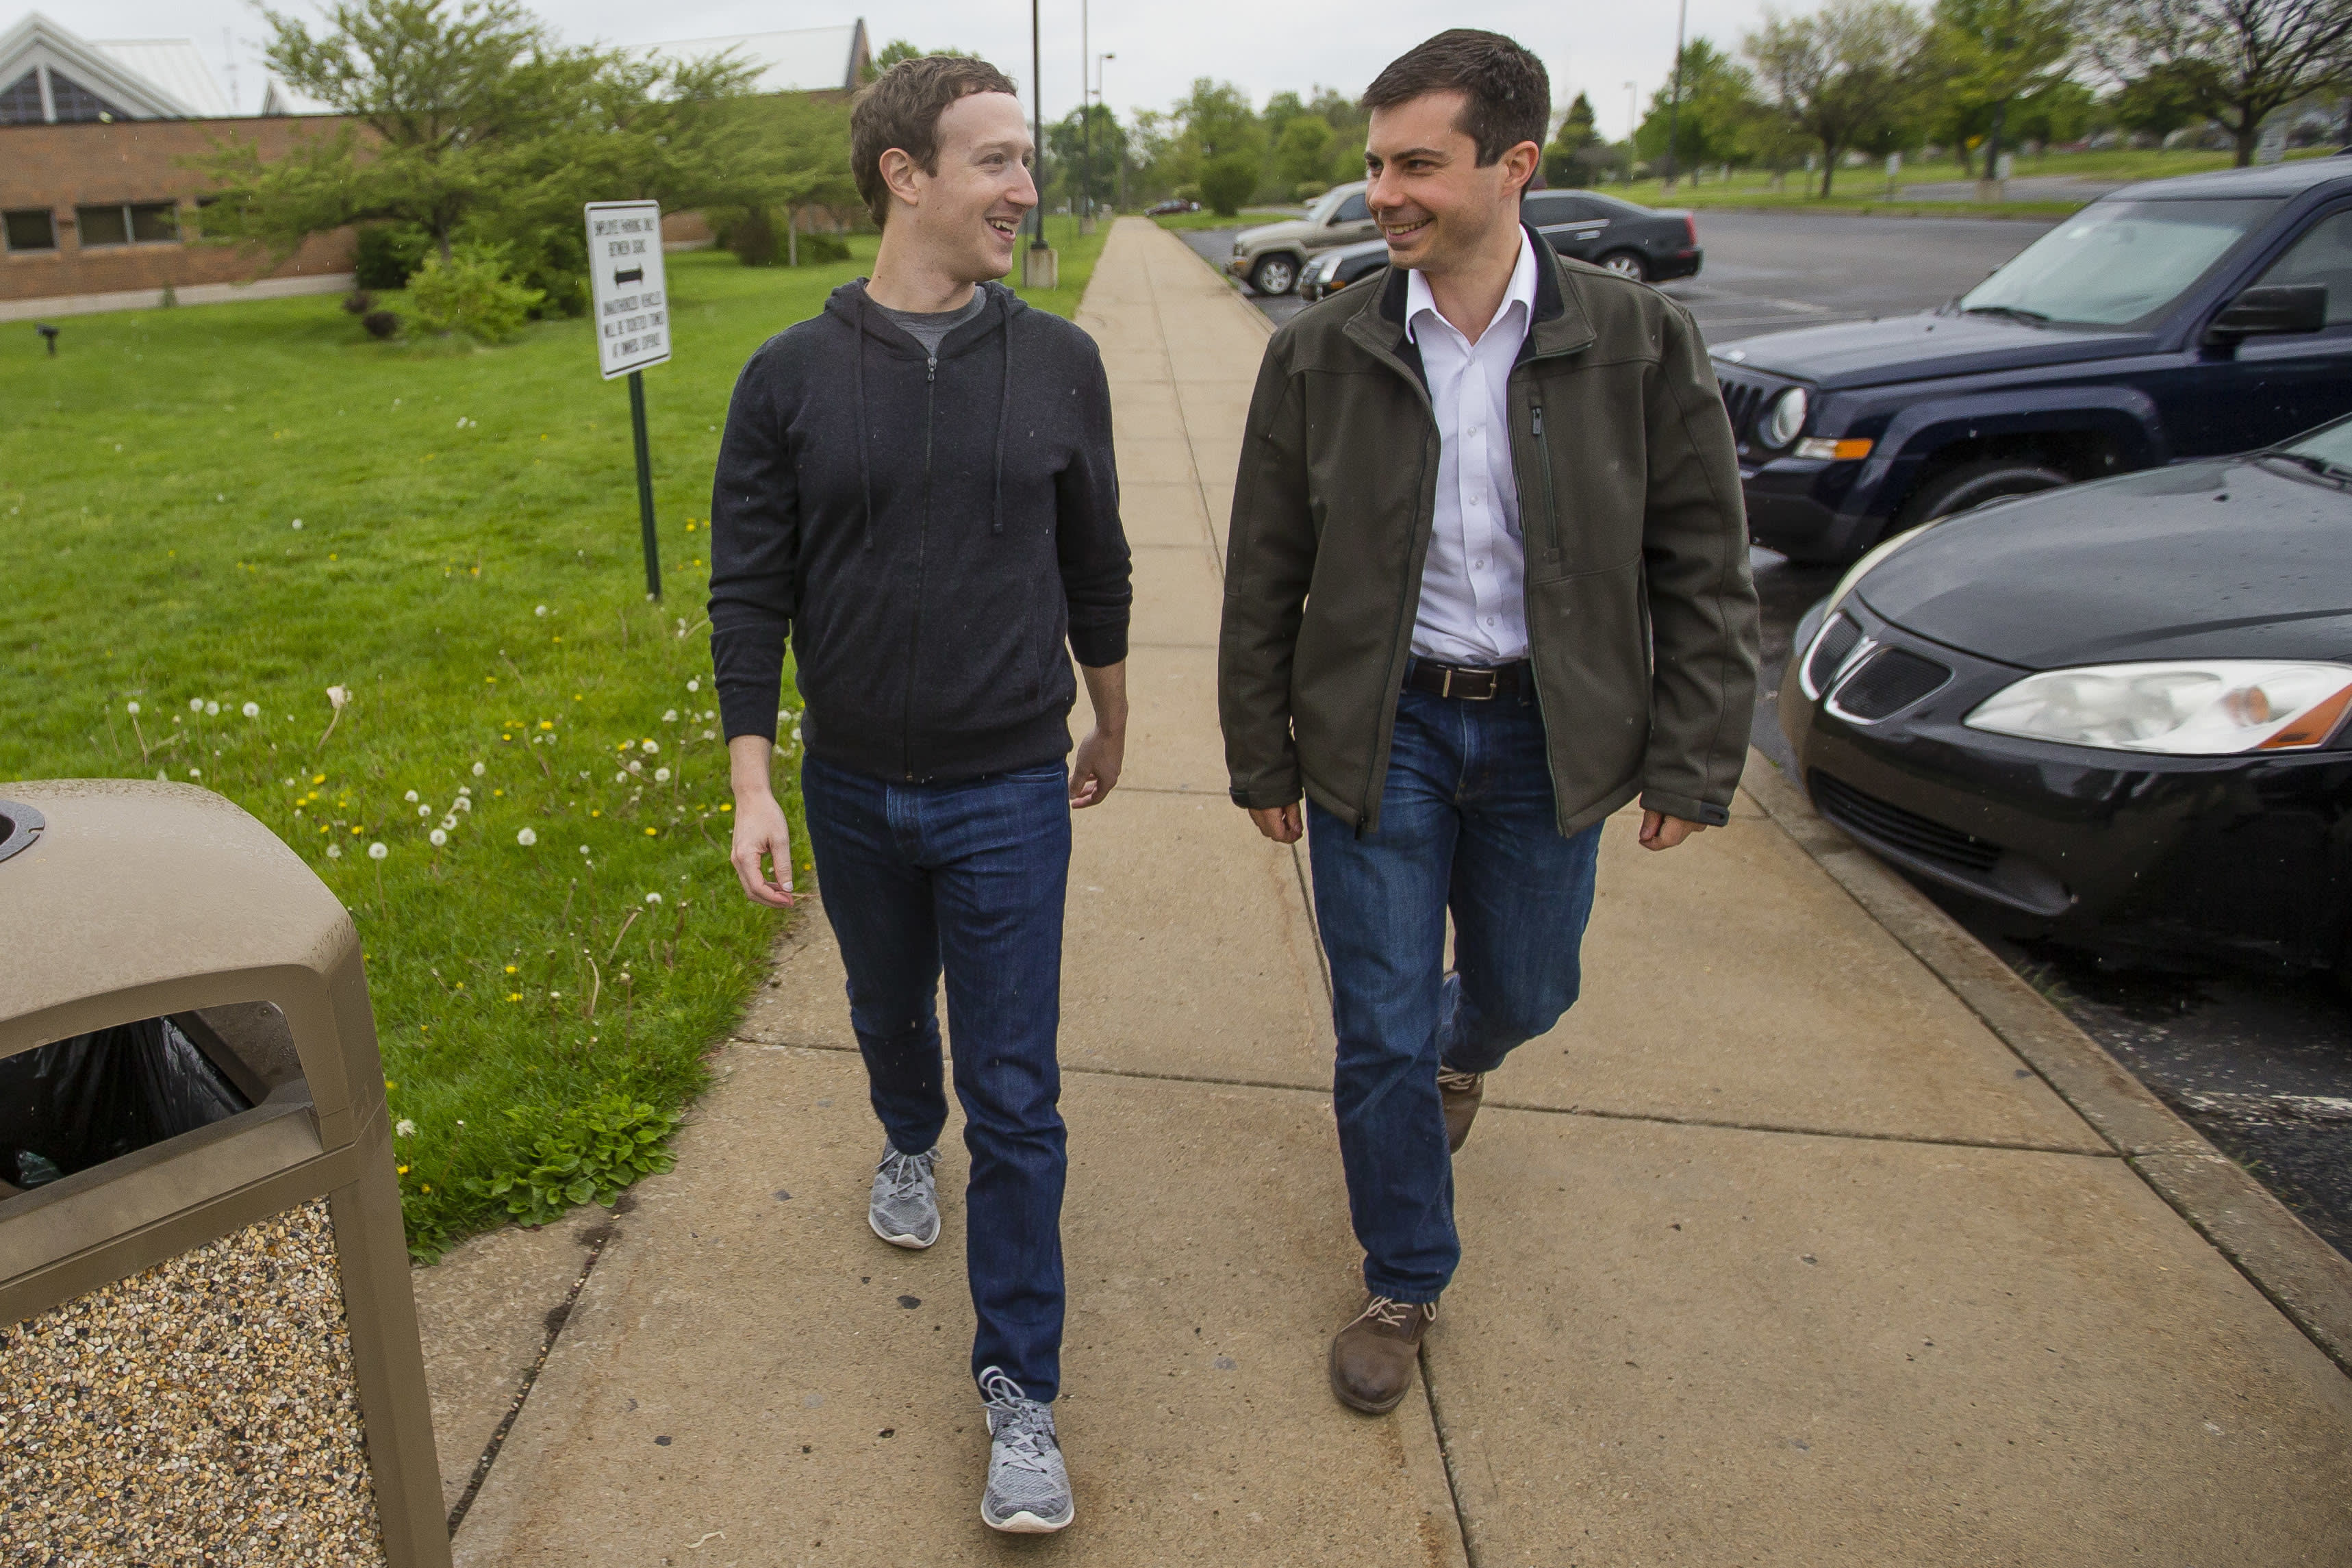 Facebook CEO Mark Zuckerberg and his wife privately recommended staff hires to Pete Buttigieg